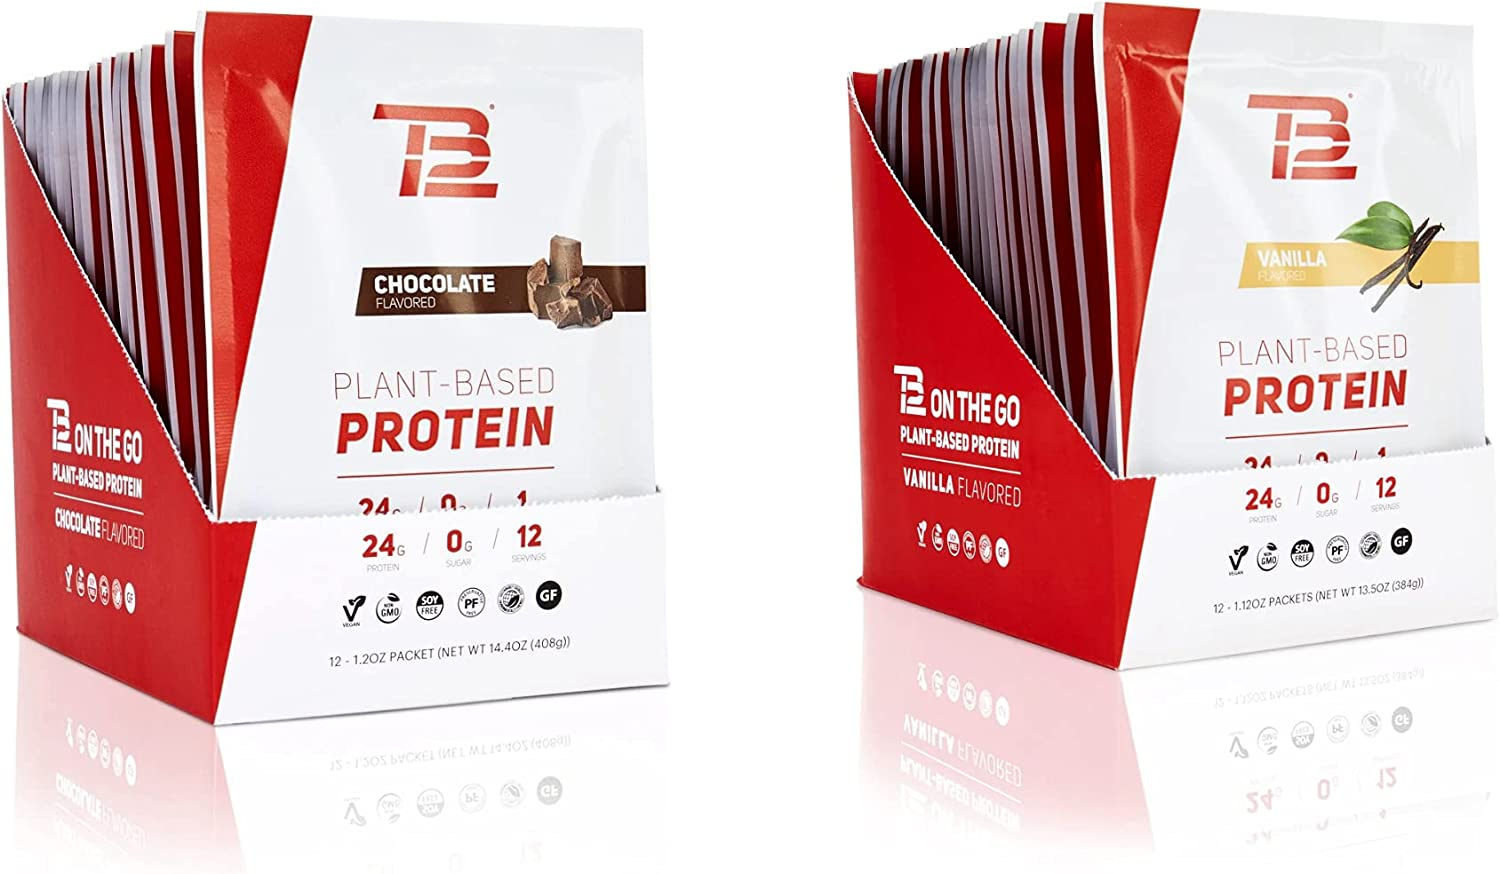 TB12 Plant Based Protein Powder, Vanilla & Chocolate Flavors - Vegan, 1g Net Carb, Non-GMO, Dairy-Free, Sugar-Free, Sustainably Sourced Pea Protein (1.12 Ounce, Pack of 12)